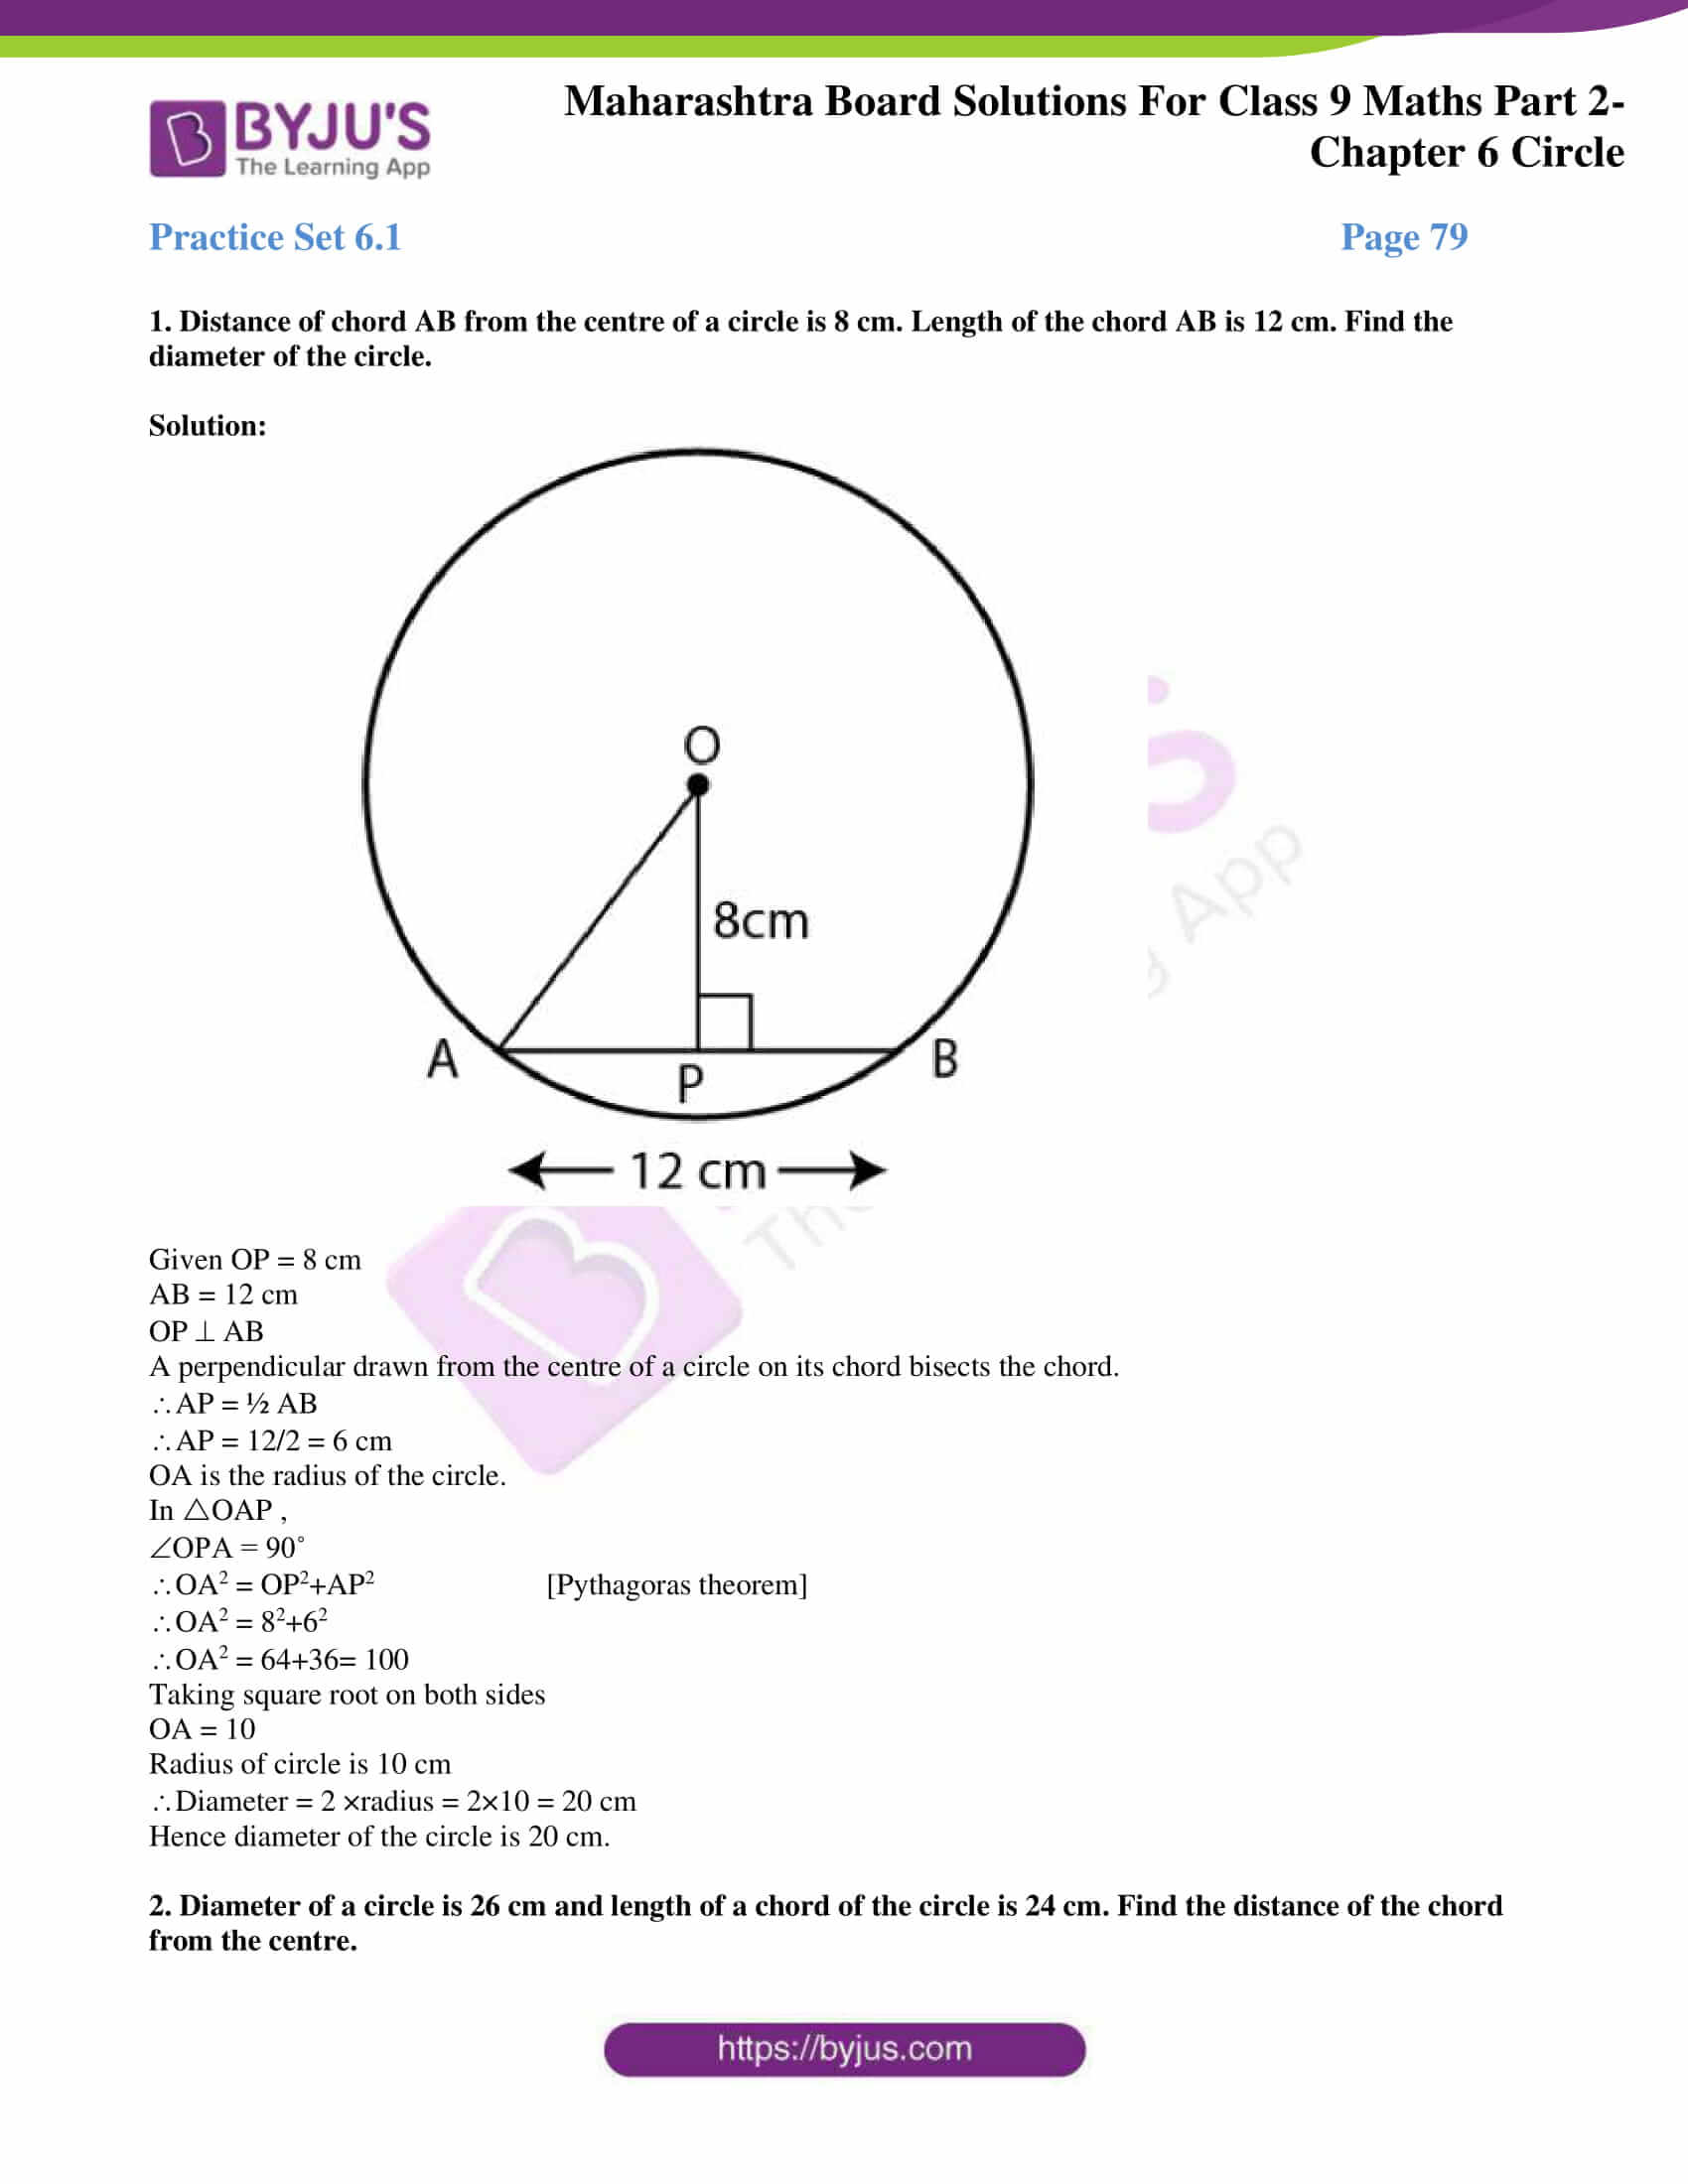 msbshse solutions for class 9 maths part 2 chapter 6 01